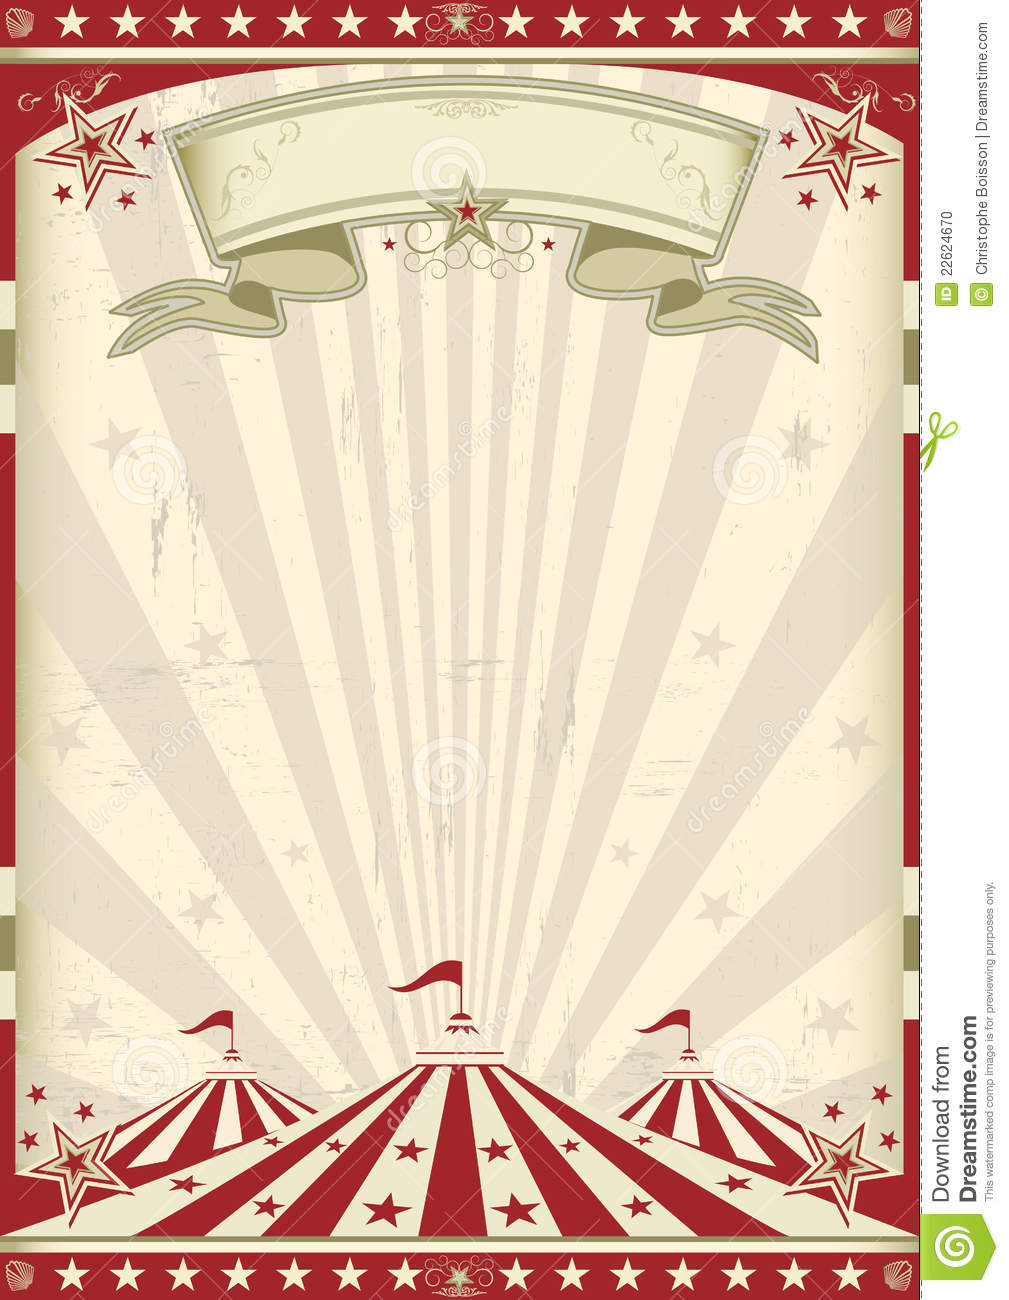 Vintage Circus Poster Background A circus vintage poster for